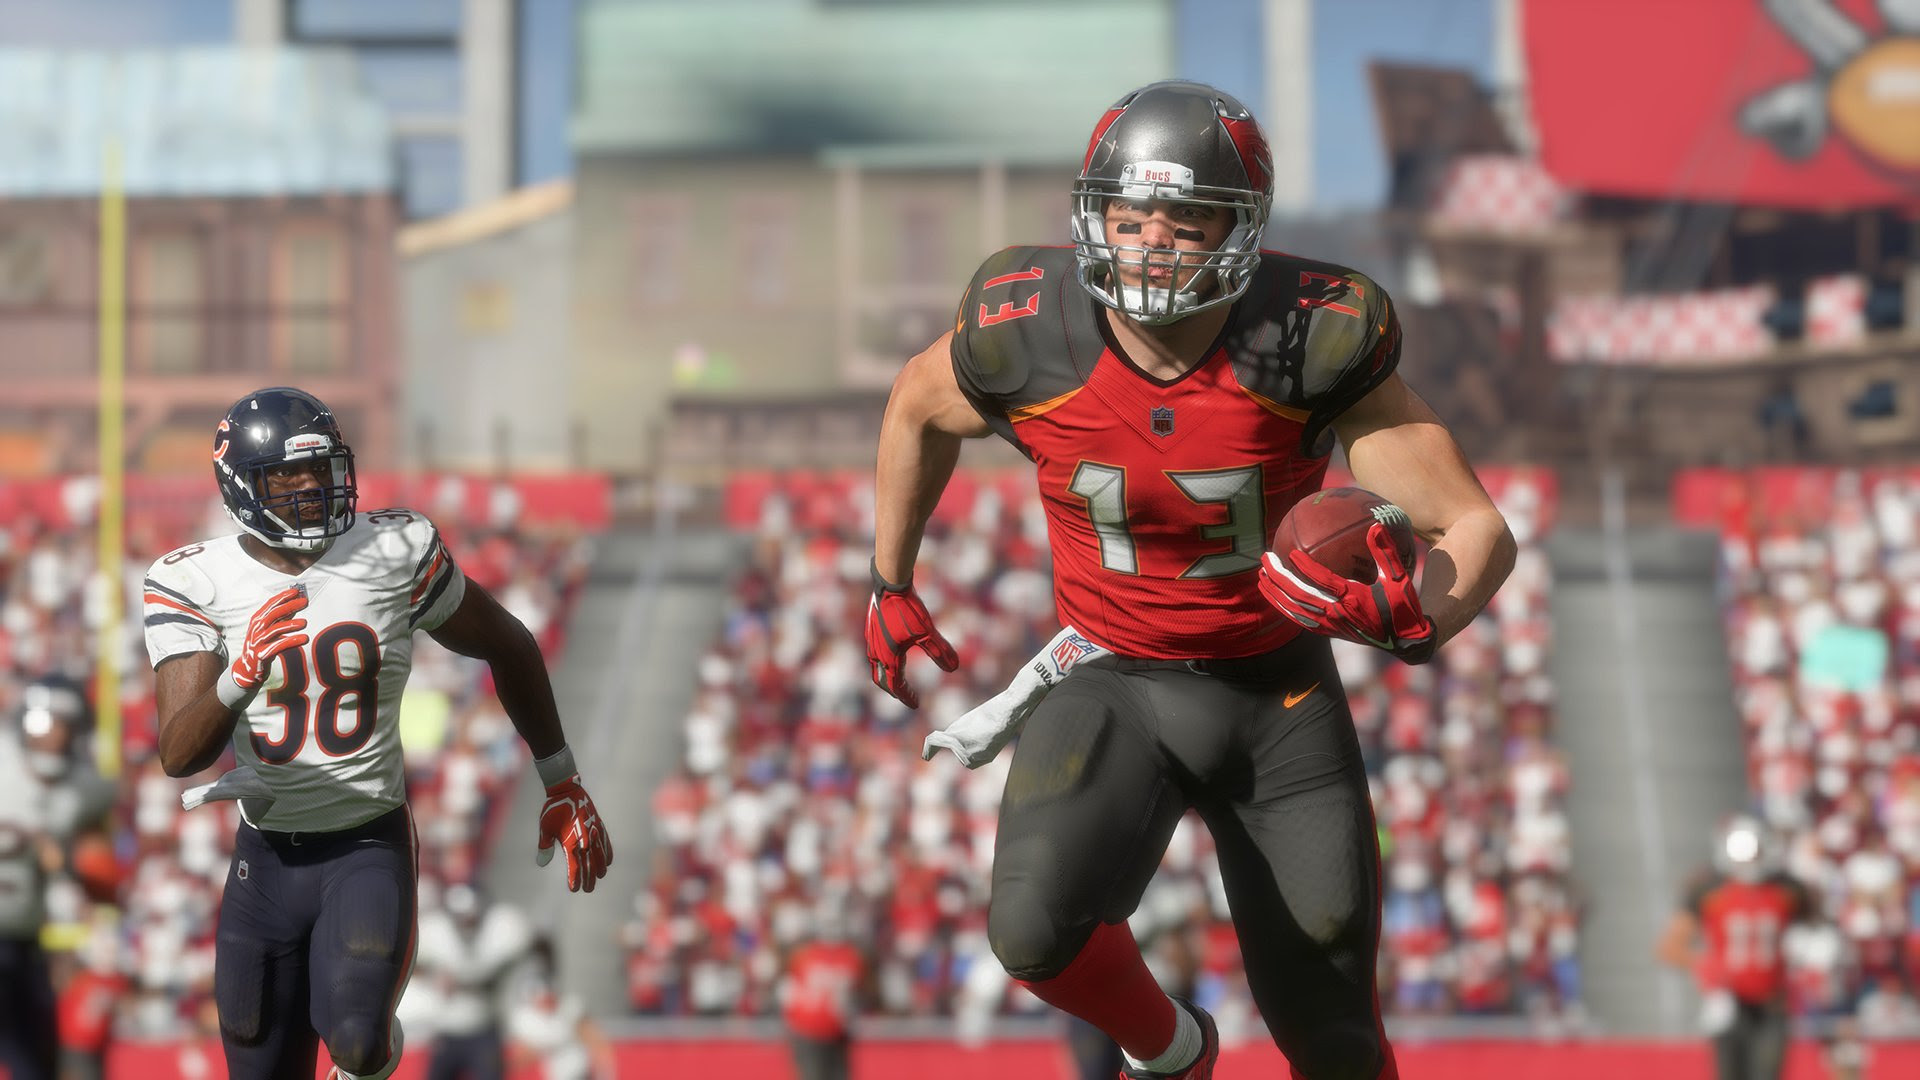 Madden NFL 18 PS4 / PlayStation 4 News, Reviews, Trailer  Screenshots